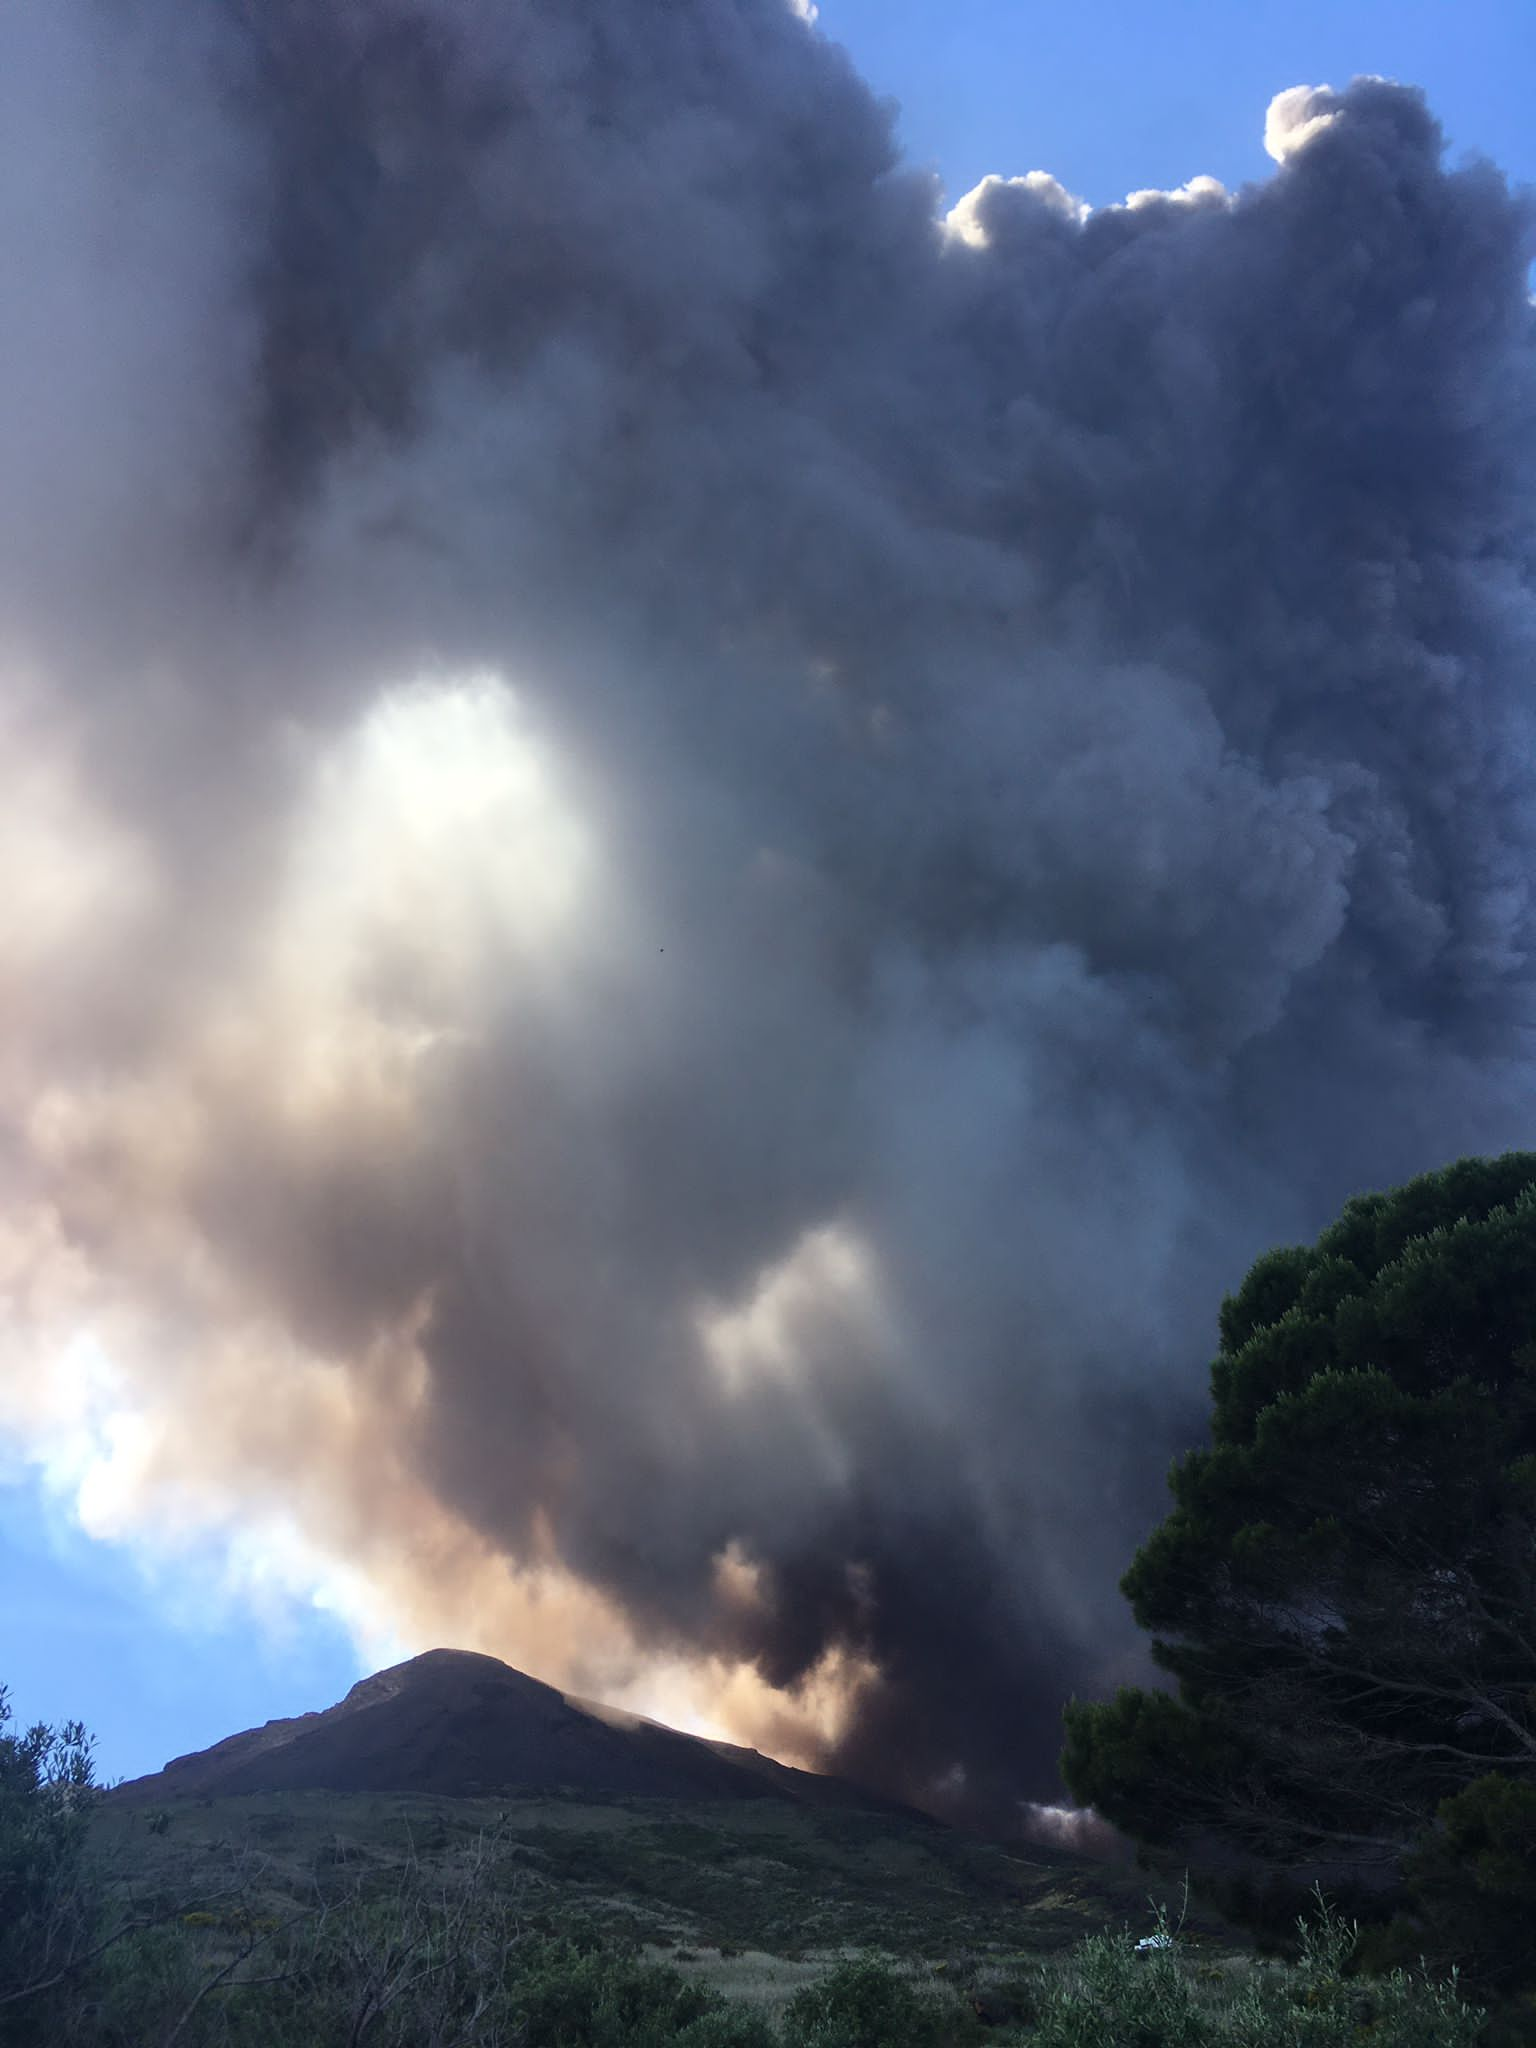 Ash plume from Stromboli this afternoon (image: Francesca Utano)